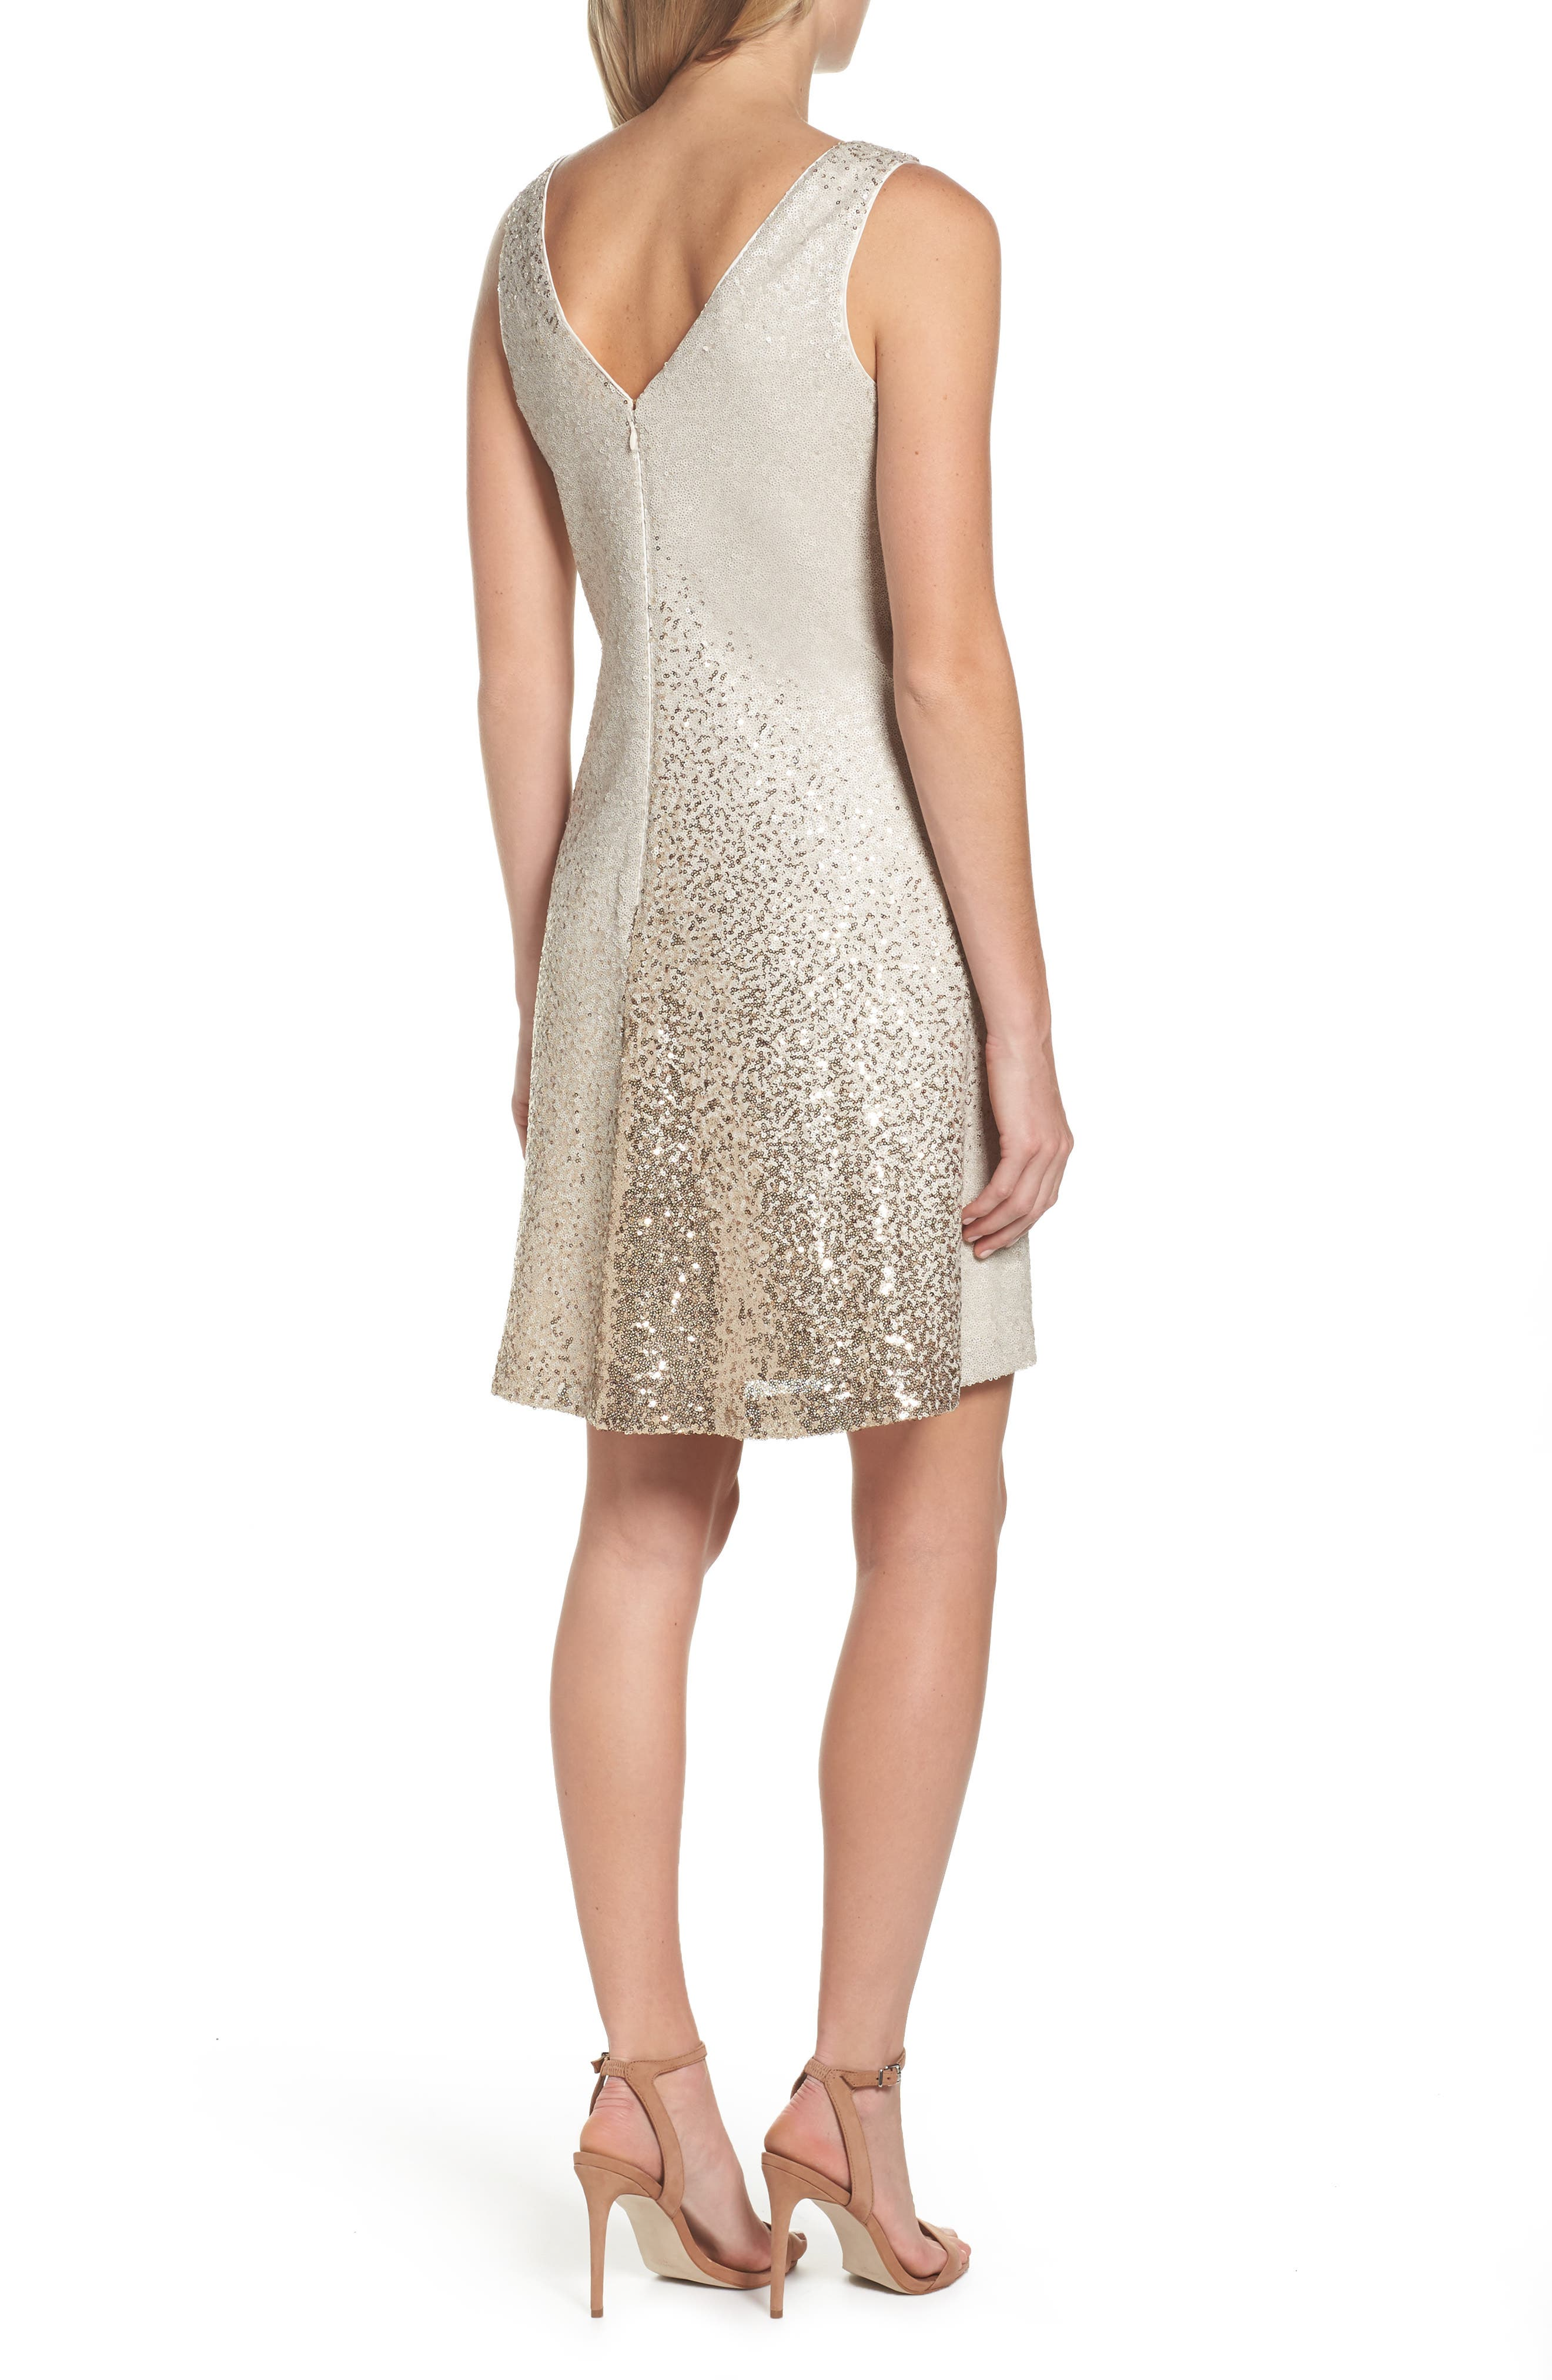 Sequin Shift Dress,                             Alternate thumbnail 2, color,                             Ivory/ Gold